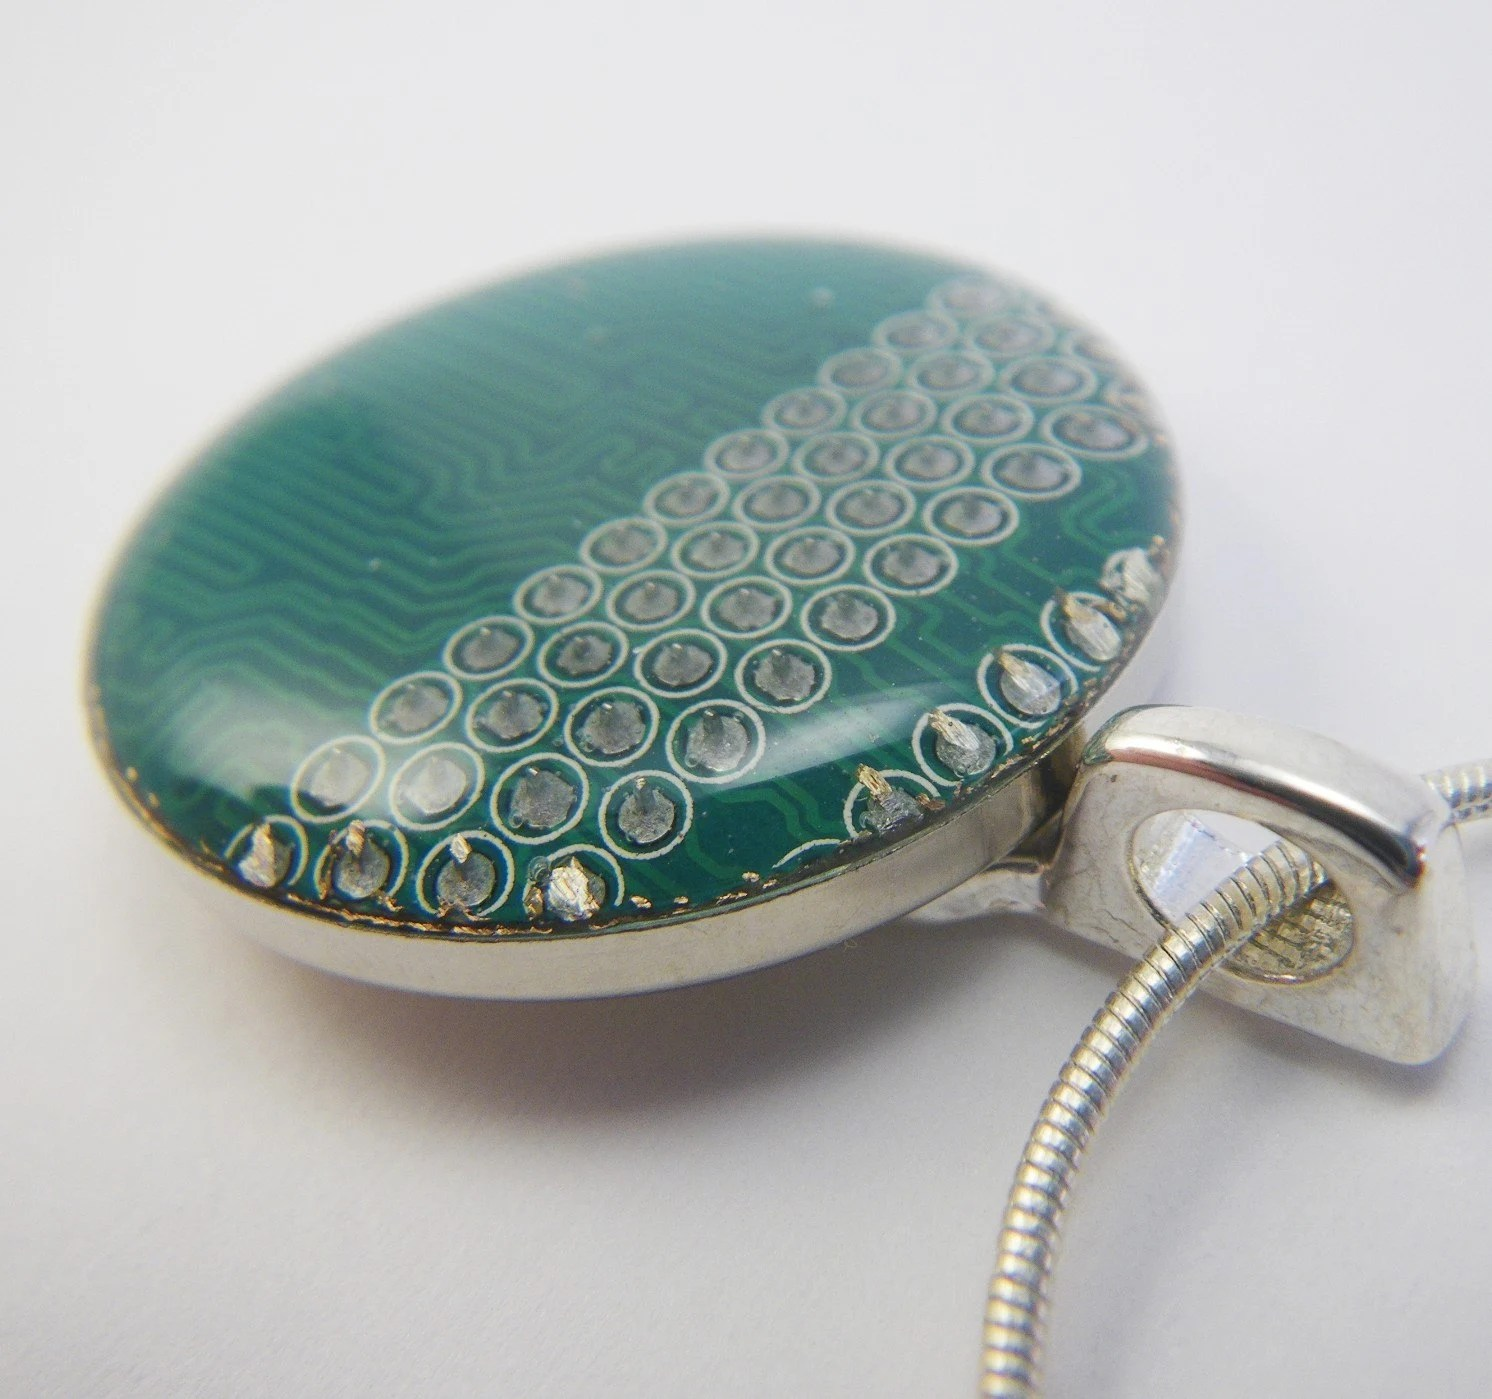 Recylced Circuit Board Necklace